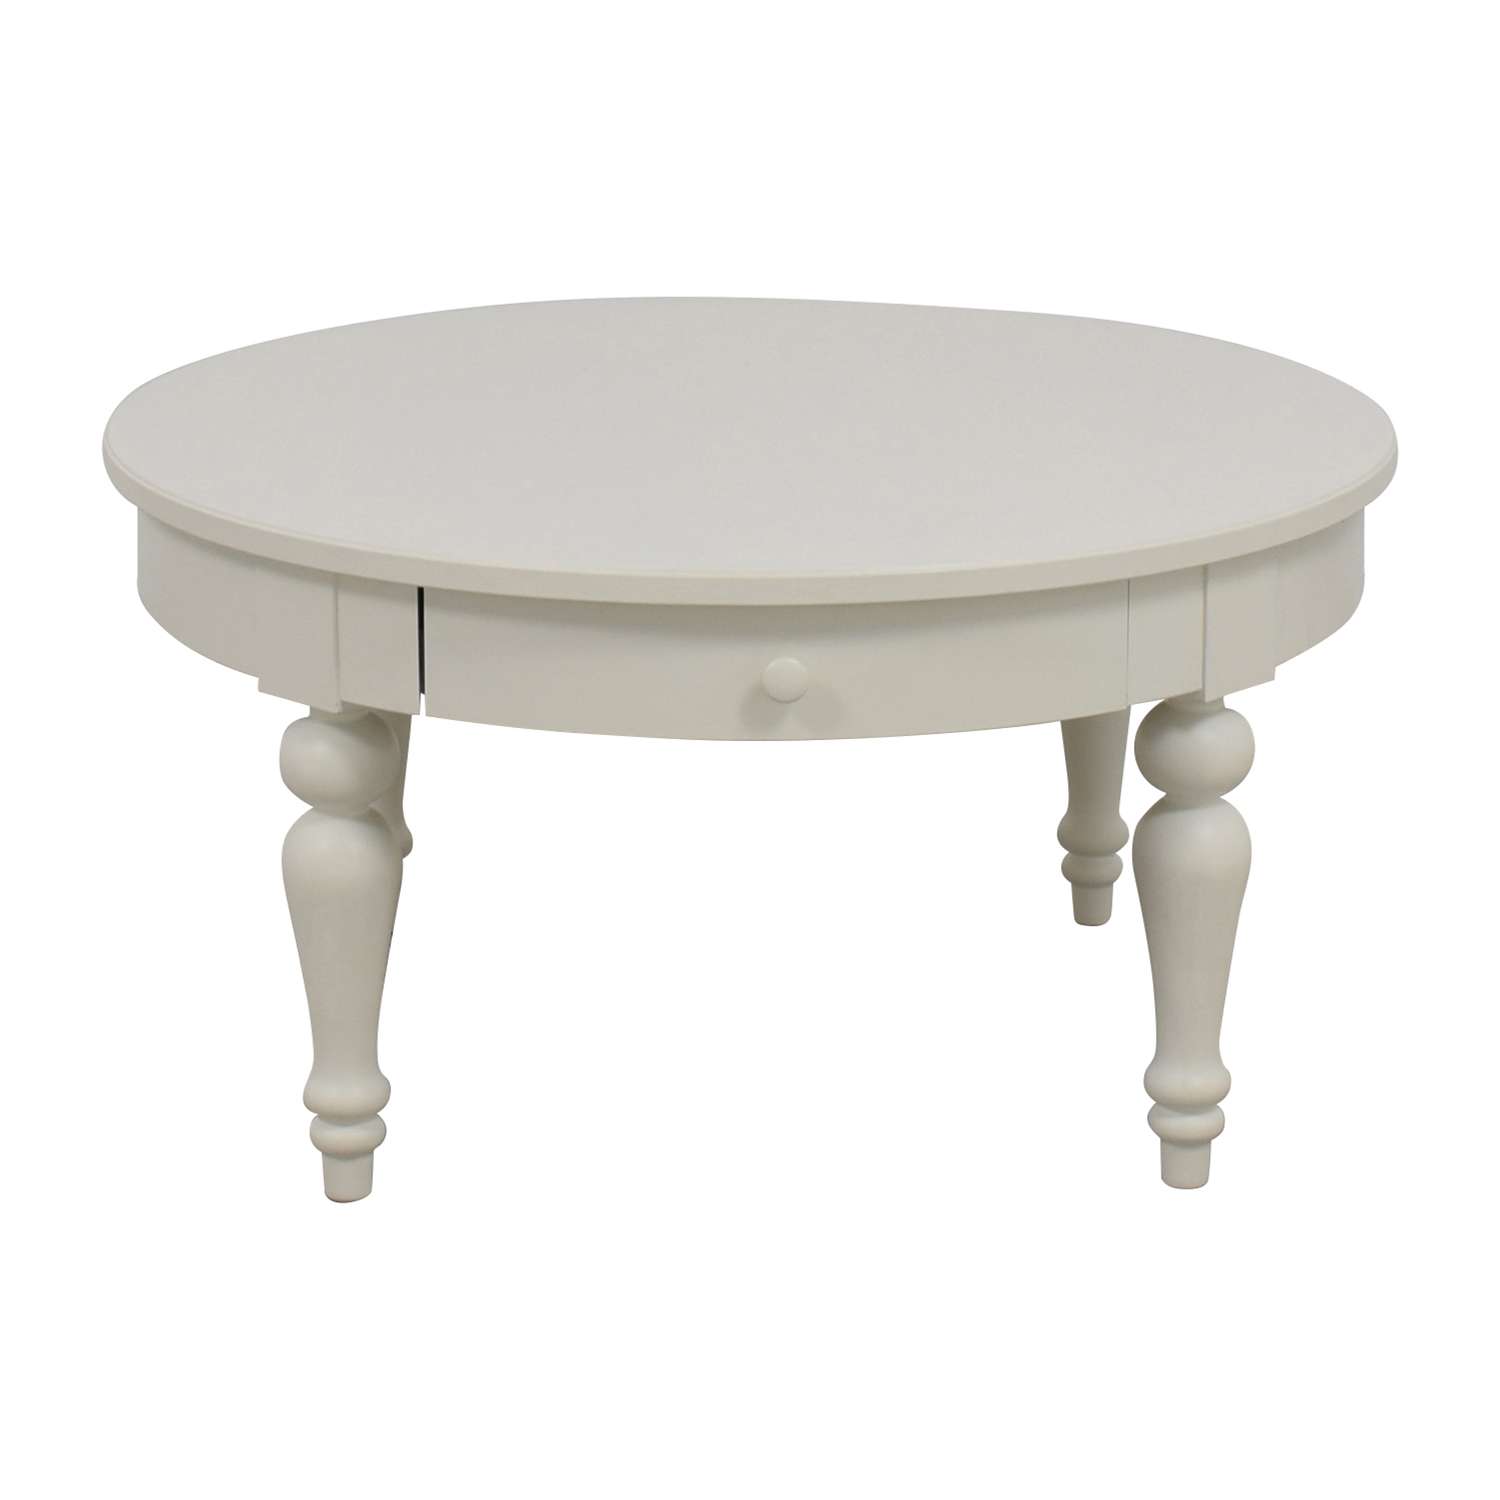 Exceptional Buy IKEA White Round Coffee Table IKEA Tables ...